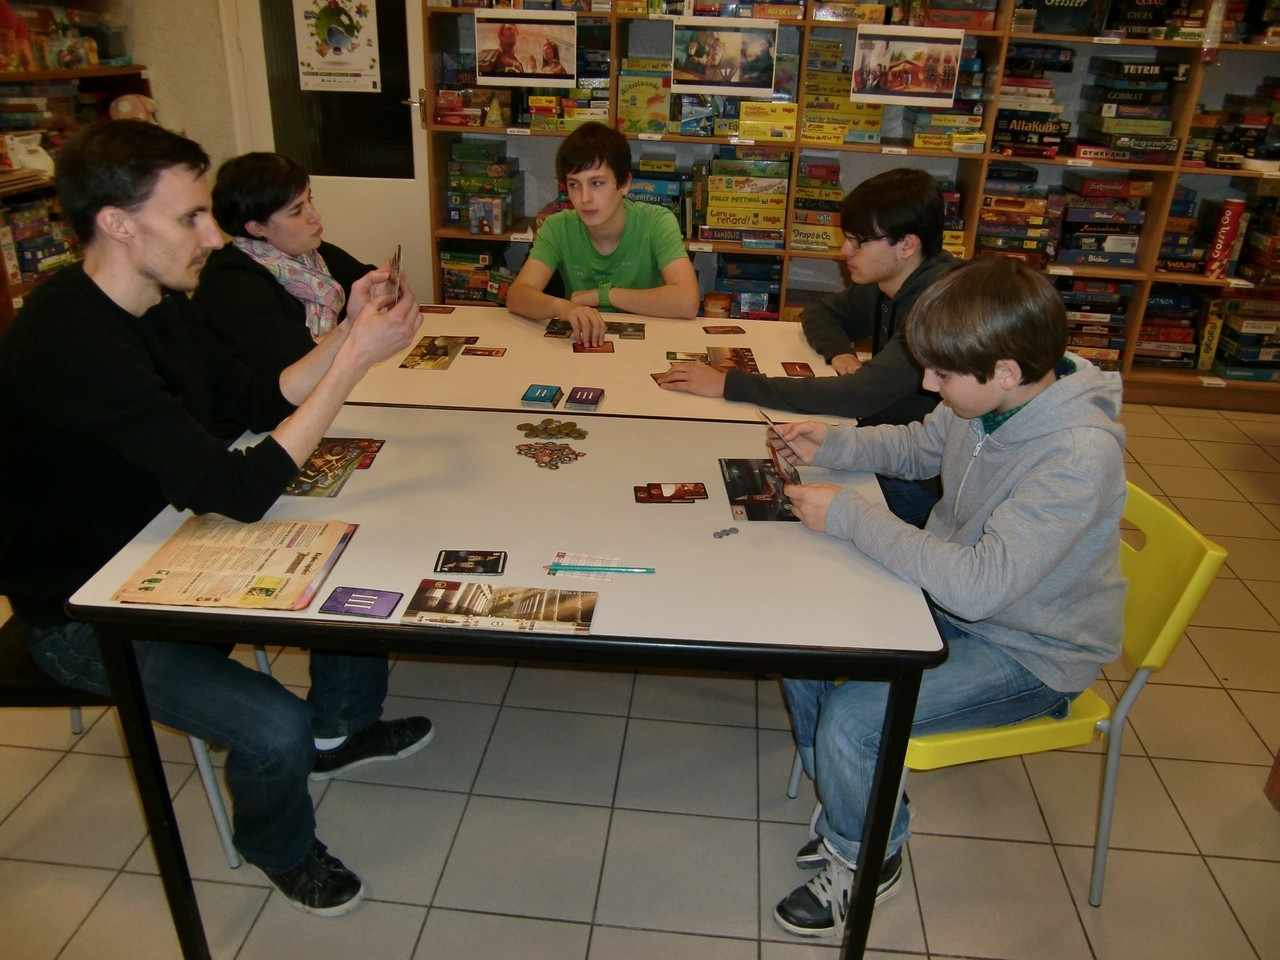 1ère ronde, table Alexandrie : Benoît, Lydie, David, Tanguy et Hippolyte